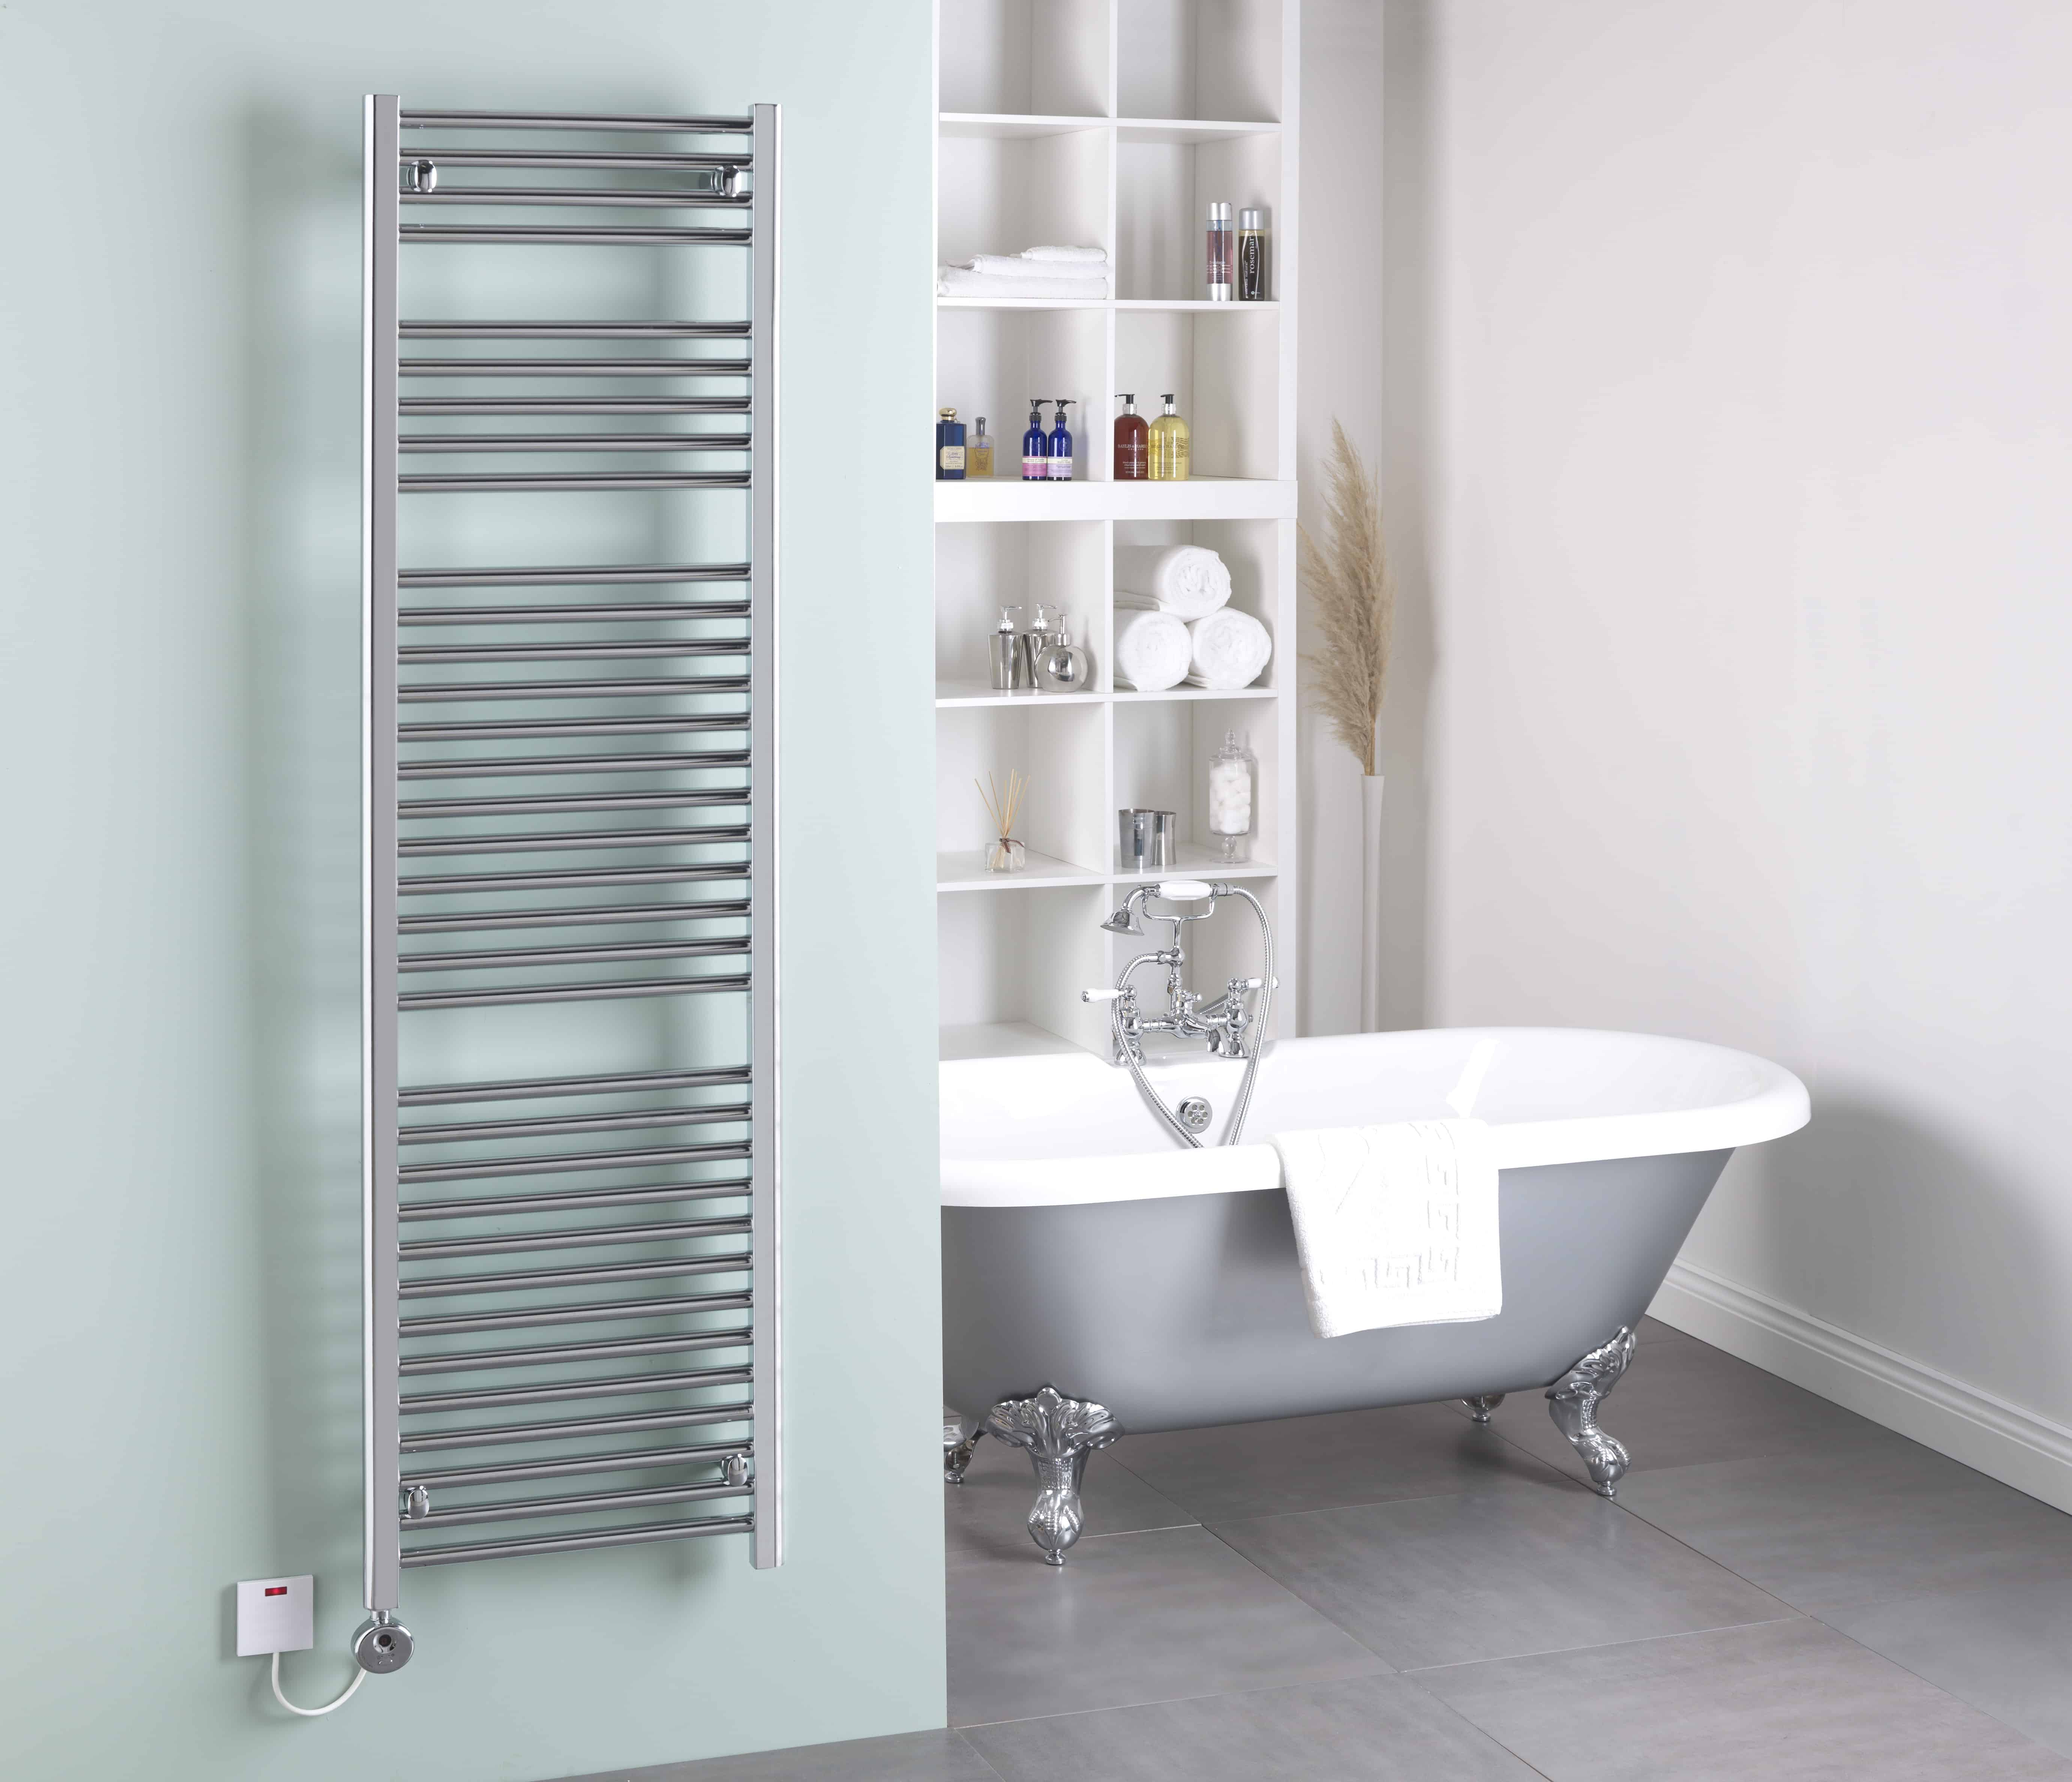 Bray 5x18 Sc Adax By Solaire Heating Products